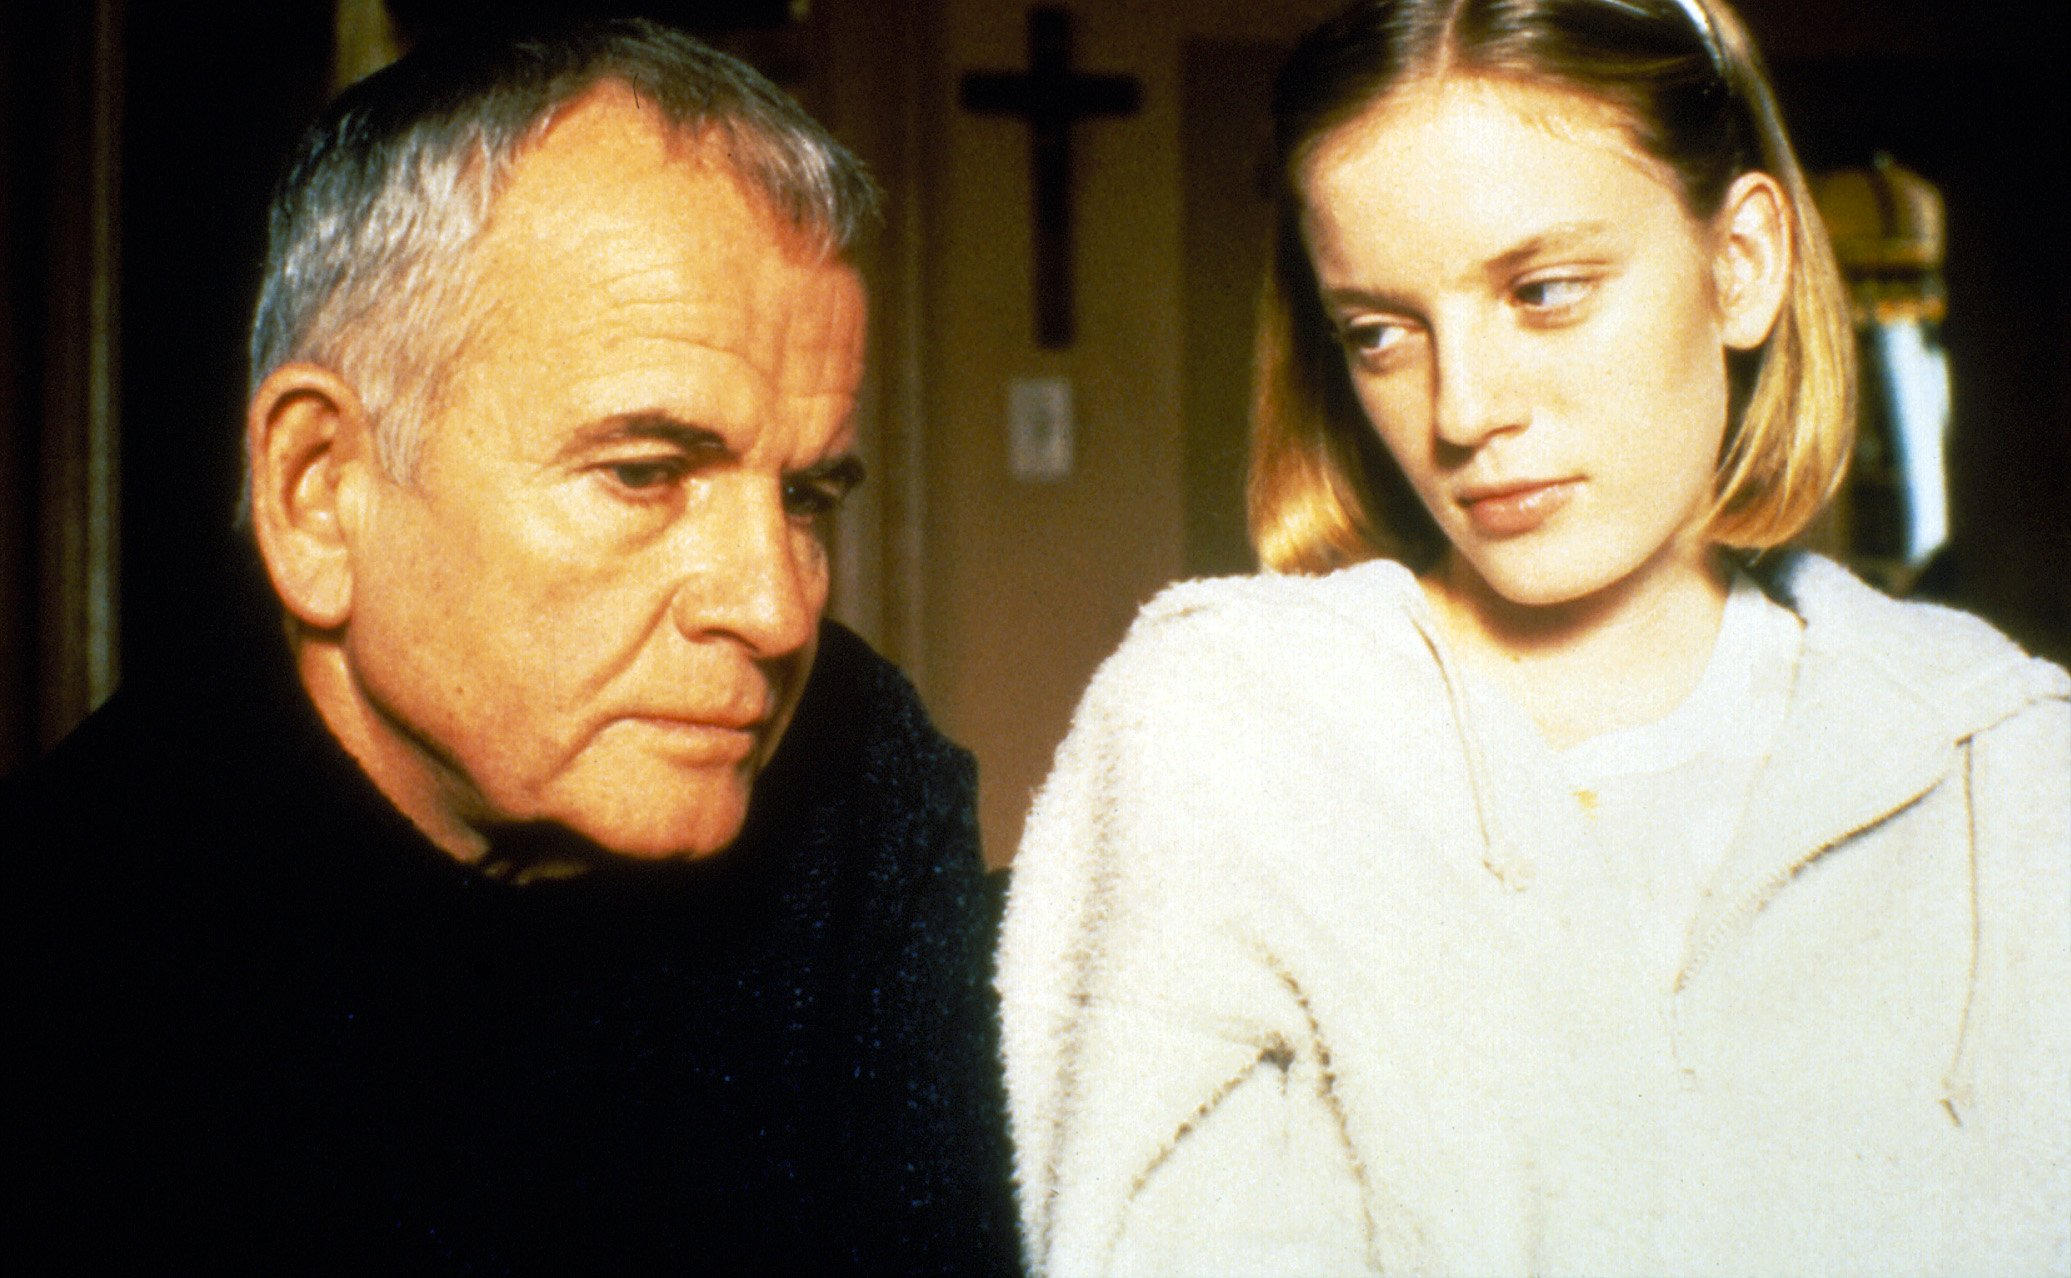 Movies Like The Starling - The Sweet Hereafter (1997)